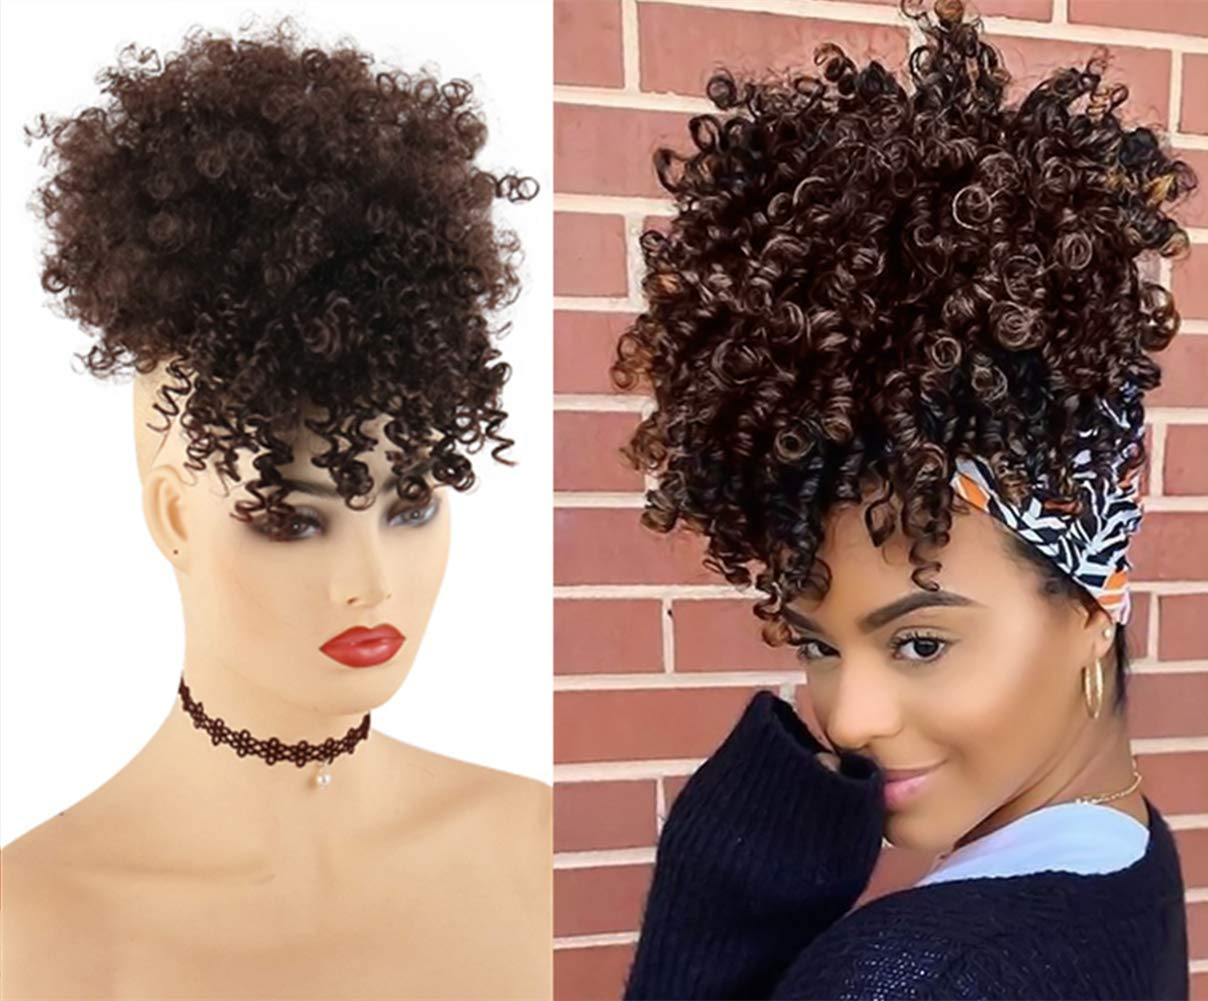 Amazon Com Chooh Afro High Puff Hair Bun Ponytail Drawstring With Bangs Synthetic Short Kinkys Curly Pineapple Pony Tail Clip In On Wrap Updo Hair Extensions For African American Women 4 Beauty